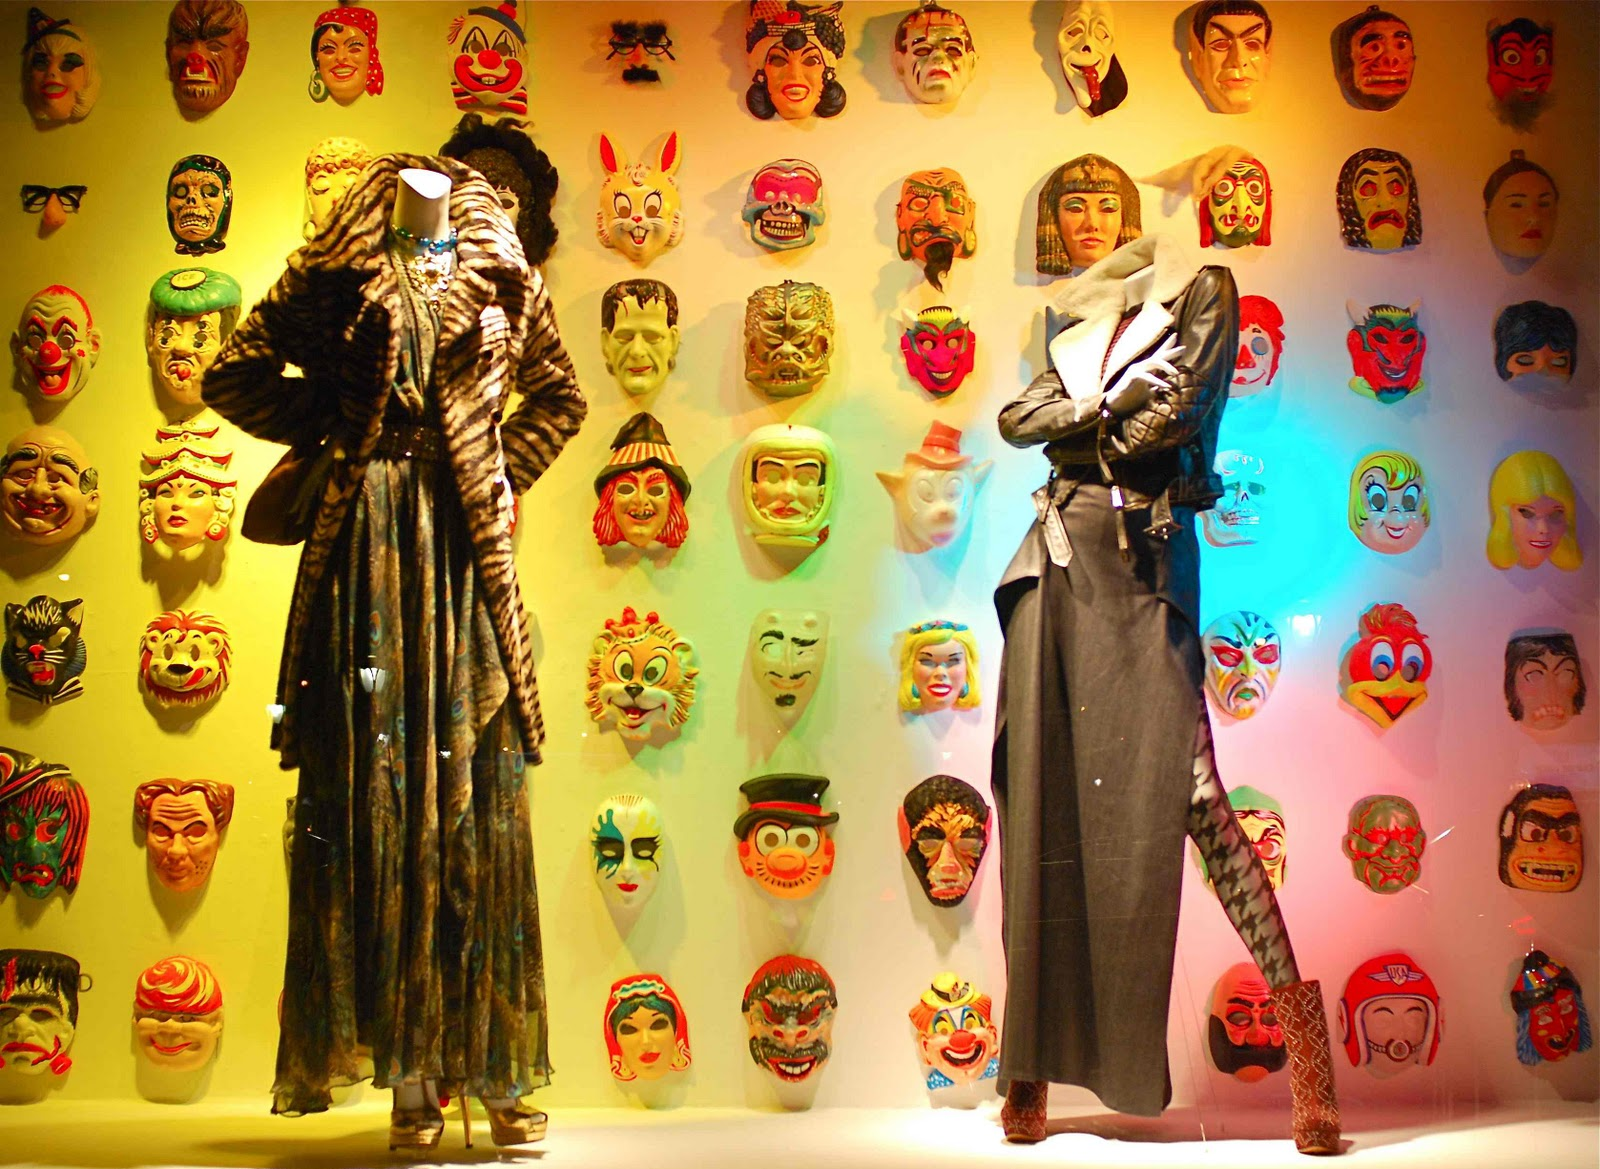 Plenty of masks hung on the back wall of the window display, representing characters for Halloween.